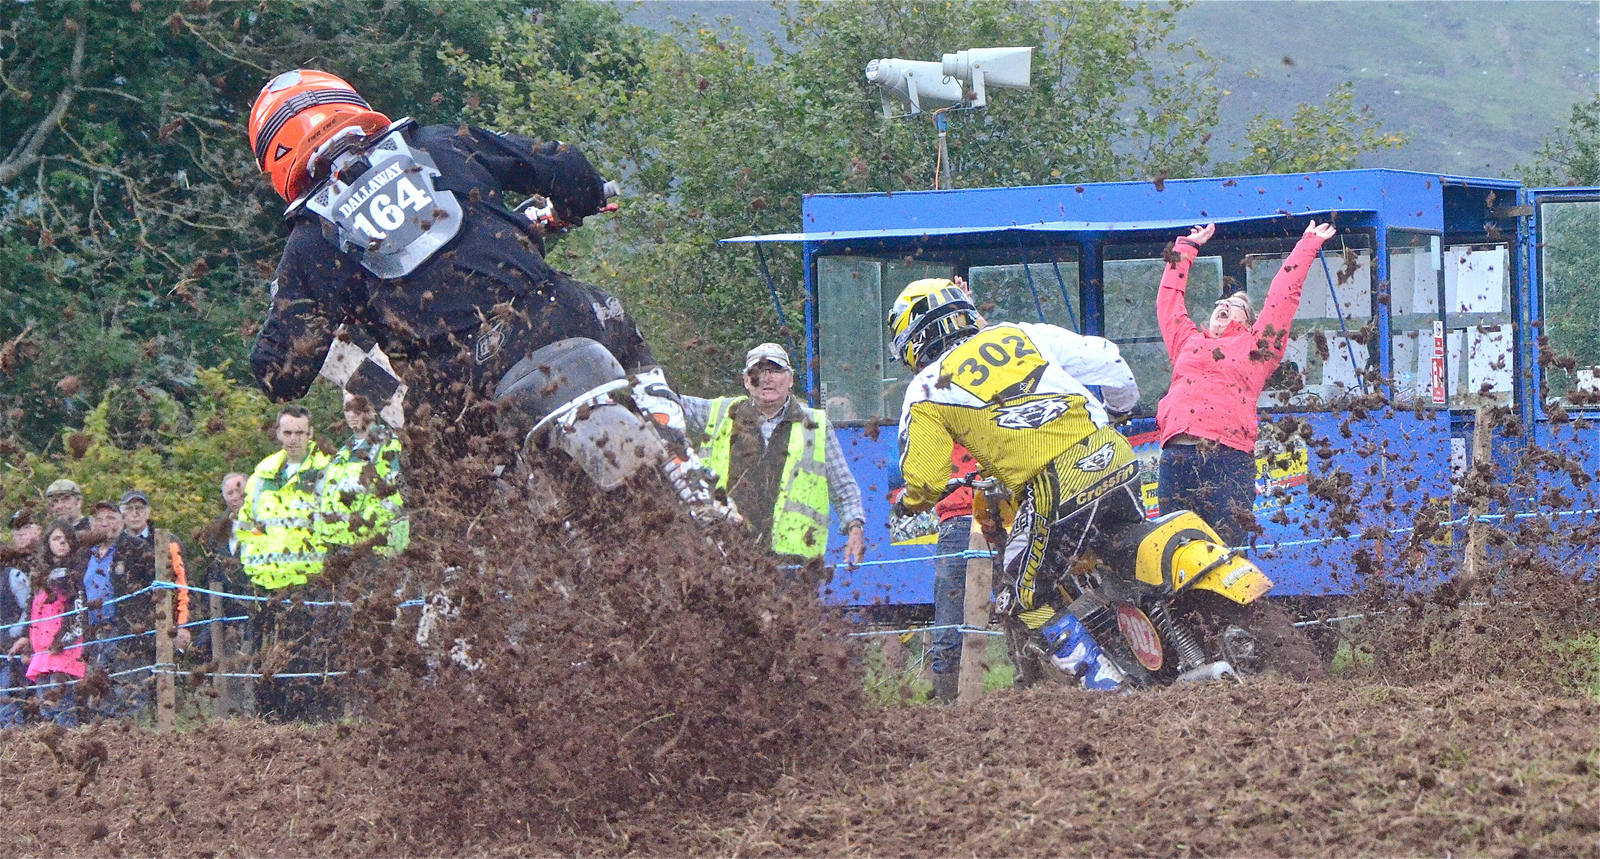 Llanthony Classic Scramble Photos September 2015 classicdirtbikerider.com..36